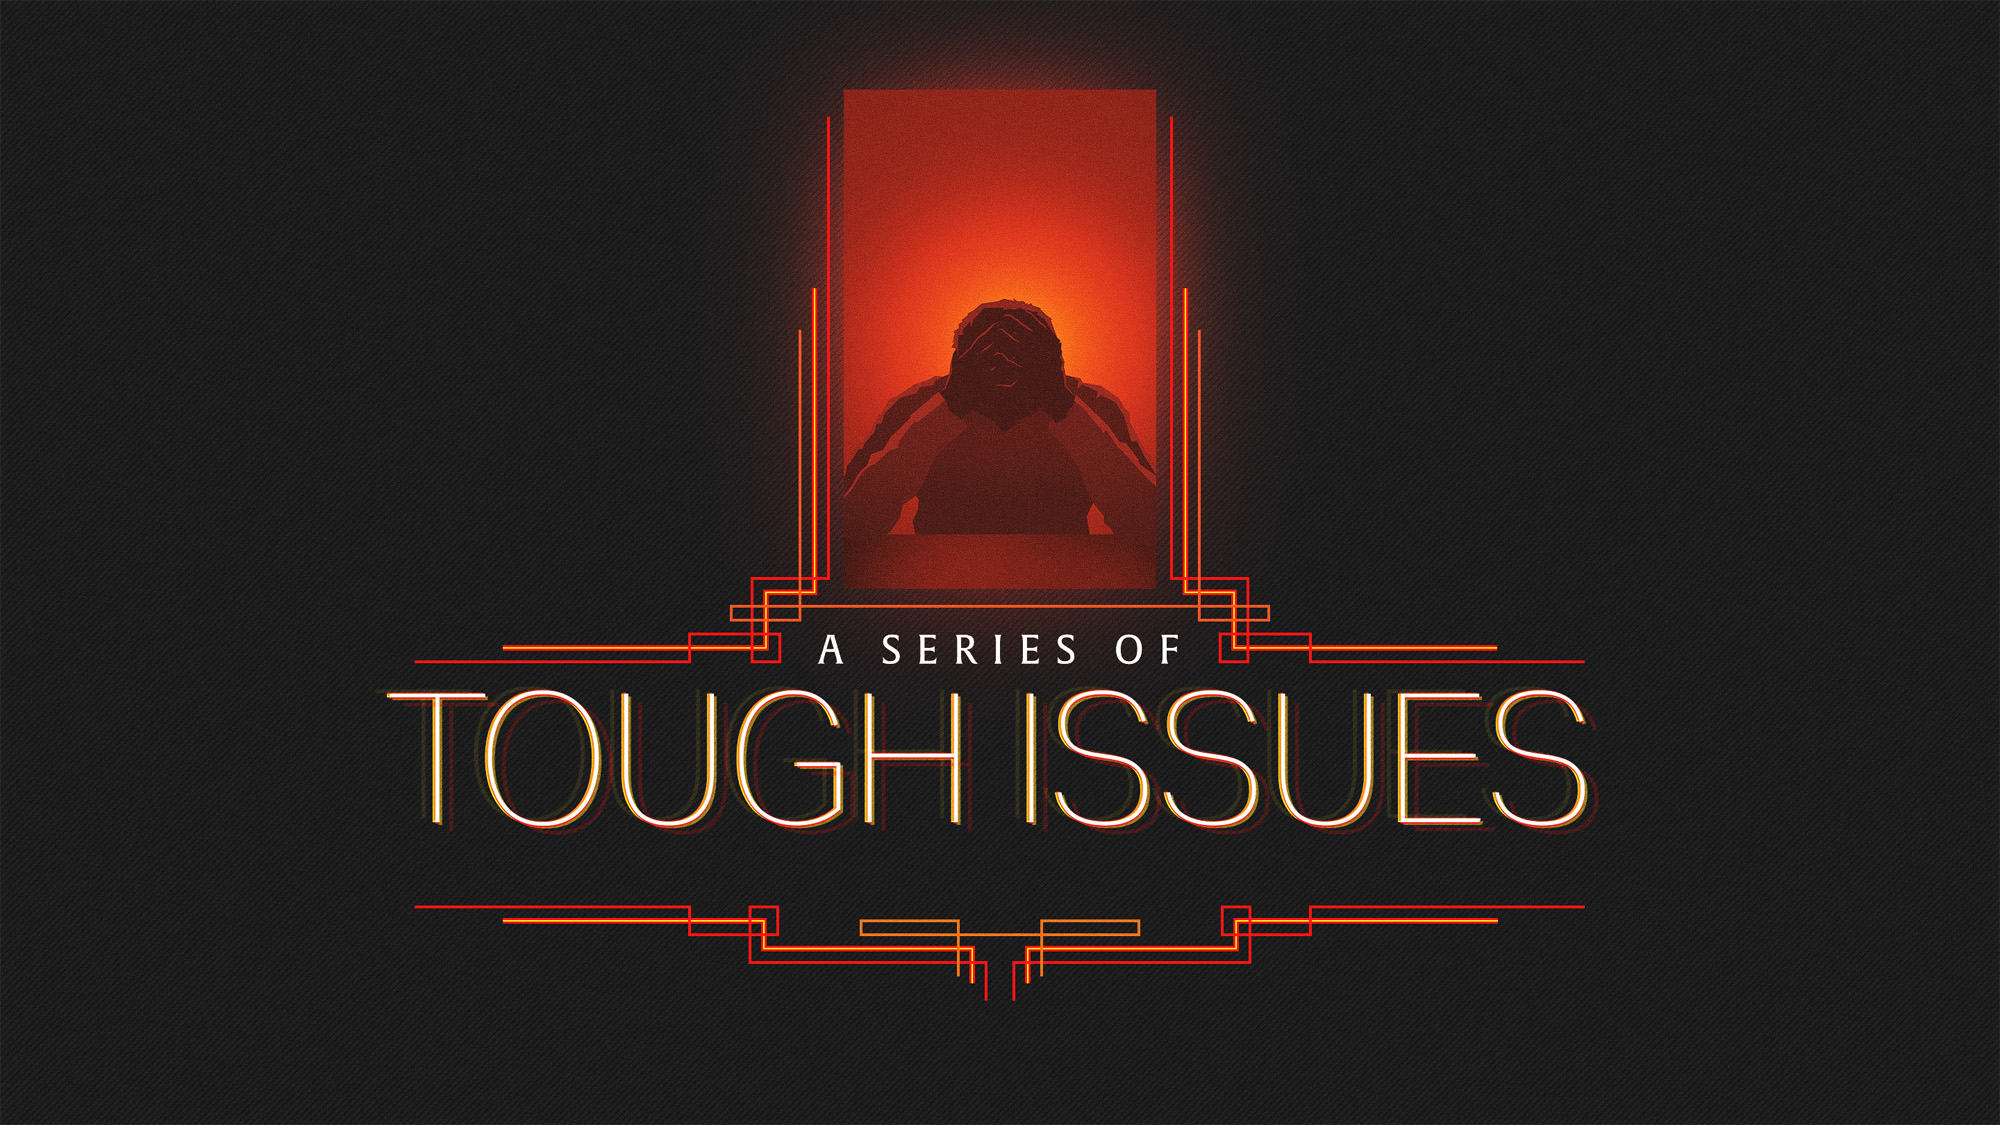 Tough Issues